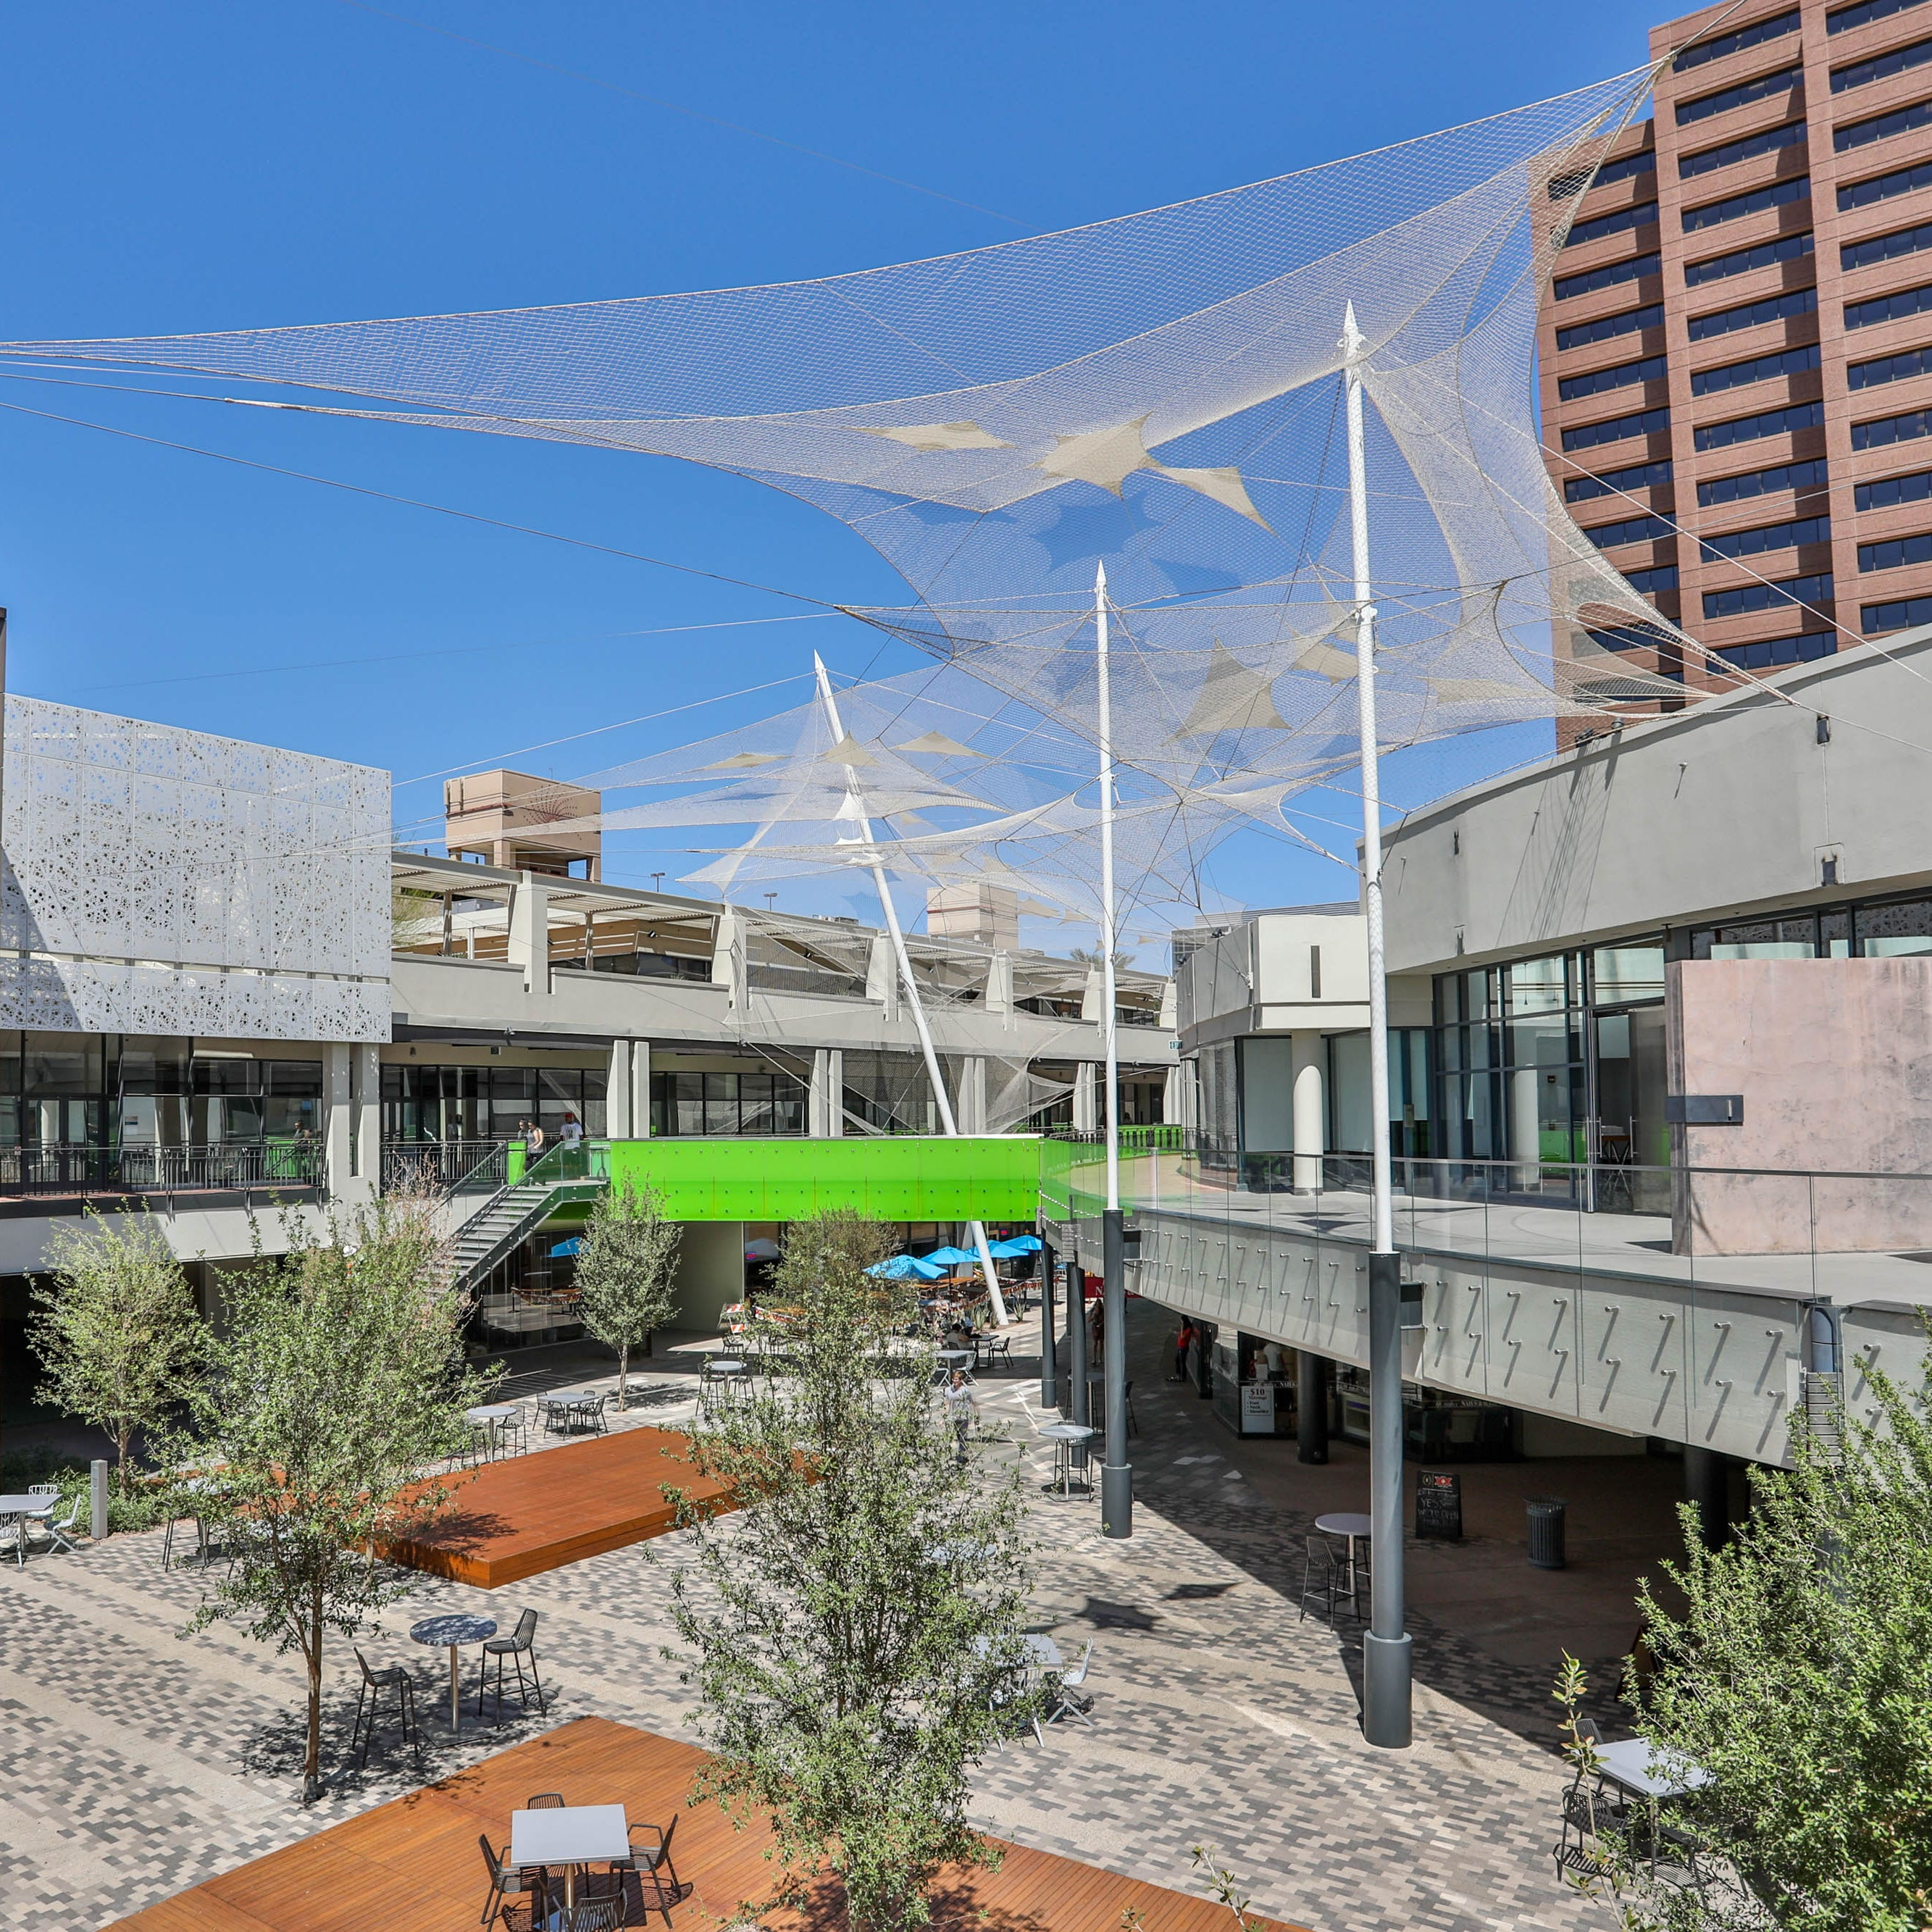 Arizona Center in downtown Phoenix gets $25 million makeover, two new towers